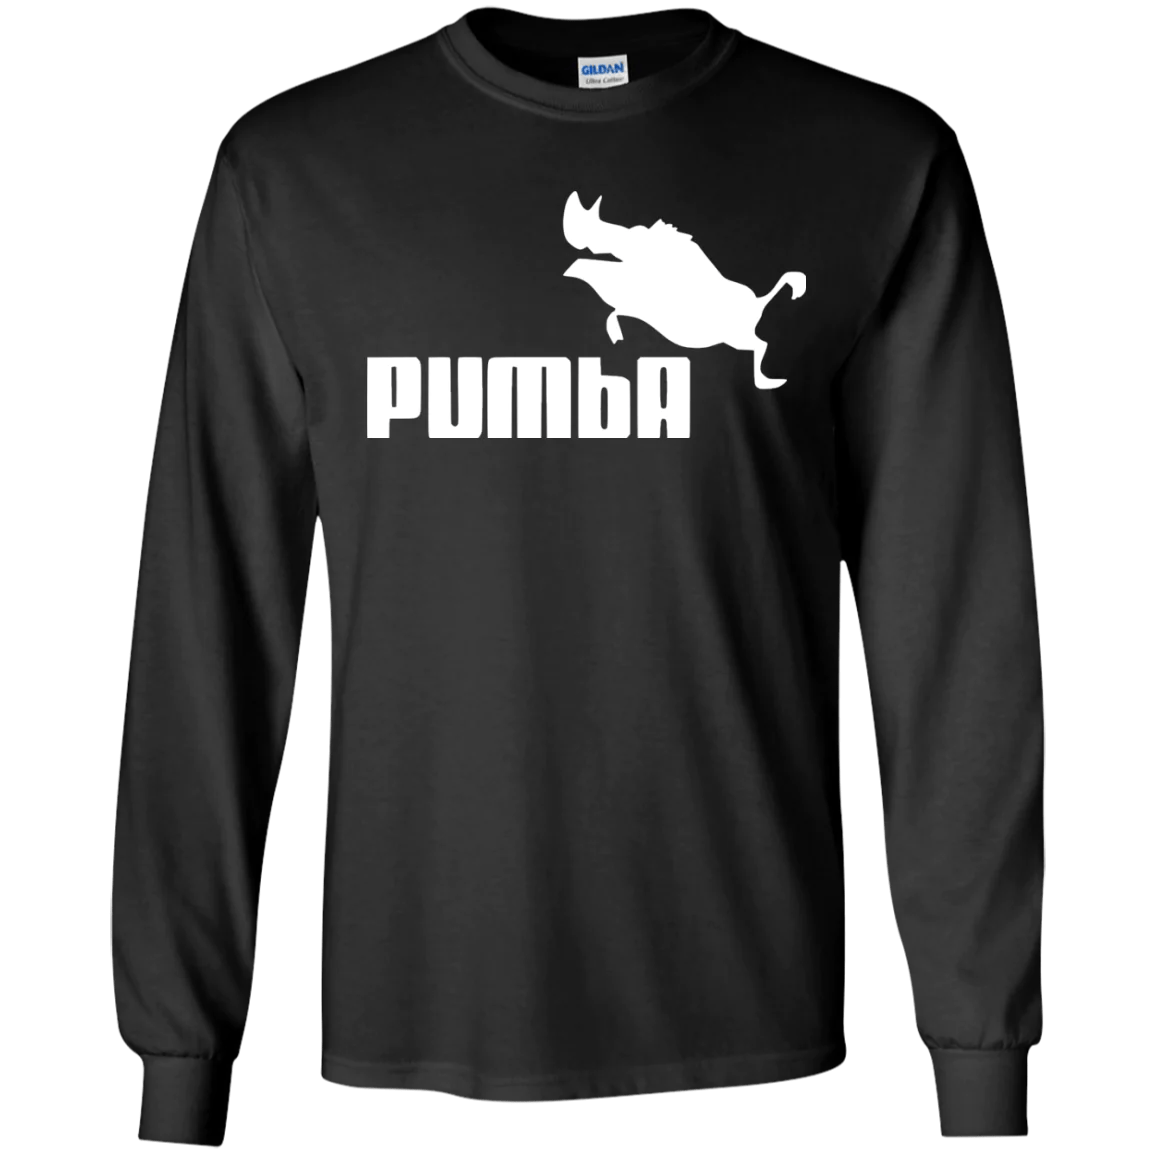 Pumba Shirt Sweater Long Sleeve Tank Top - Ifrogtees